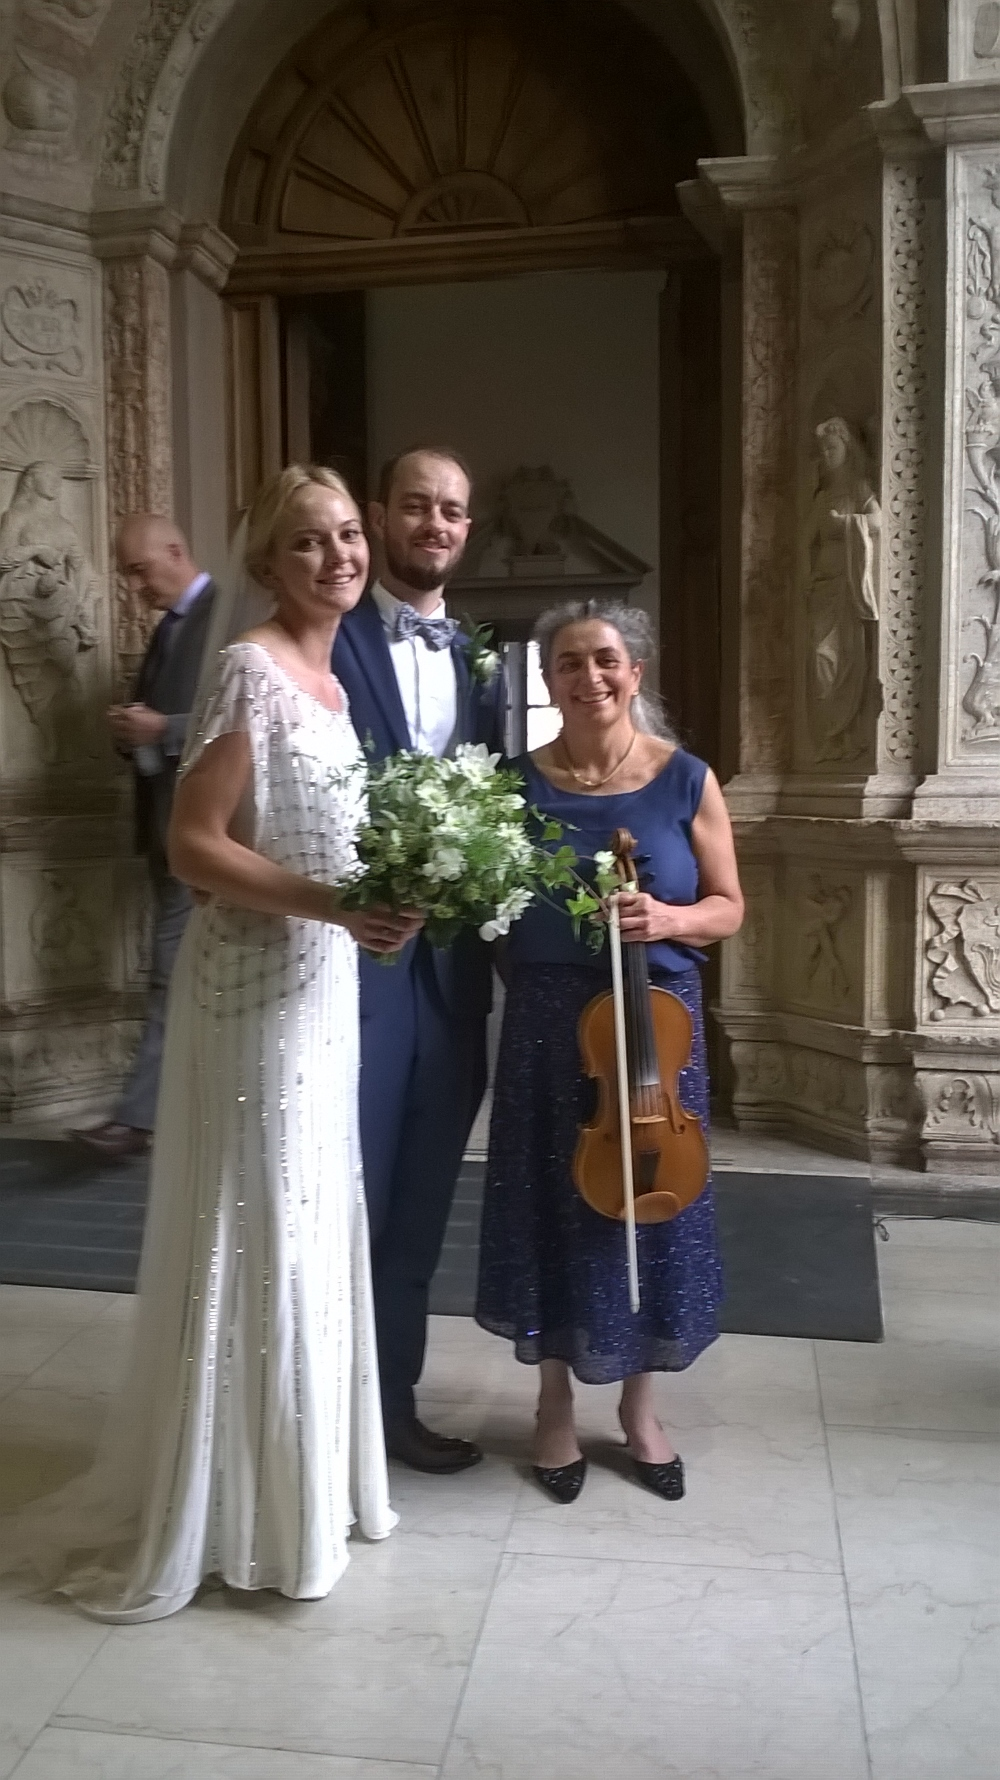 The newly wedded couple and the wedding musician with the viola, in the beautiful Town Hall of Cremona, in Italy, the homeland of the finest stringed musical instrument